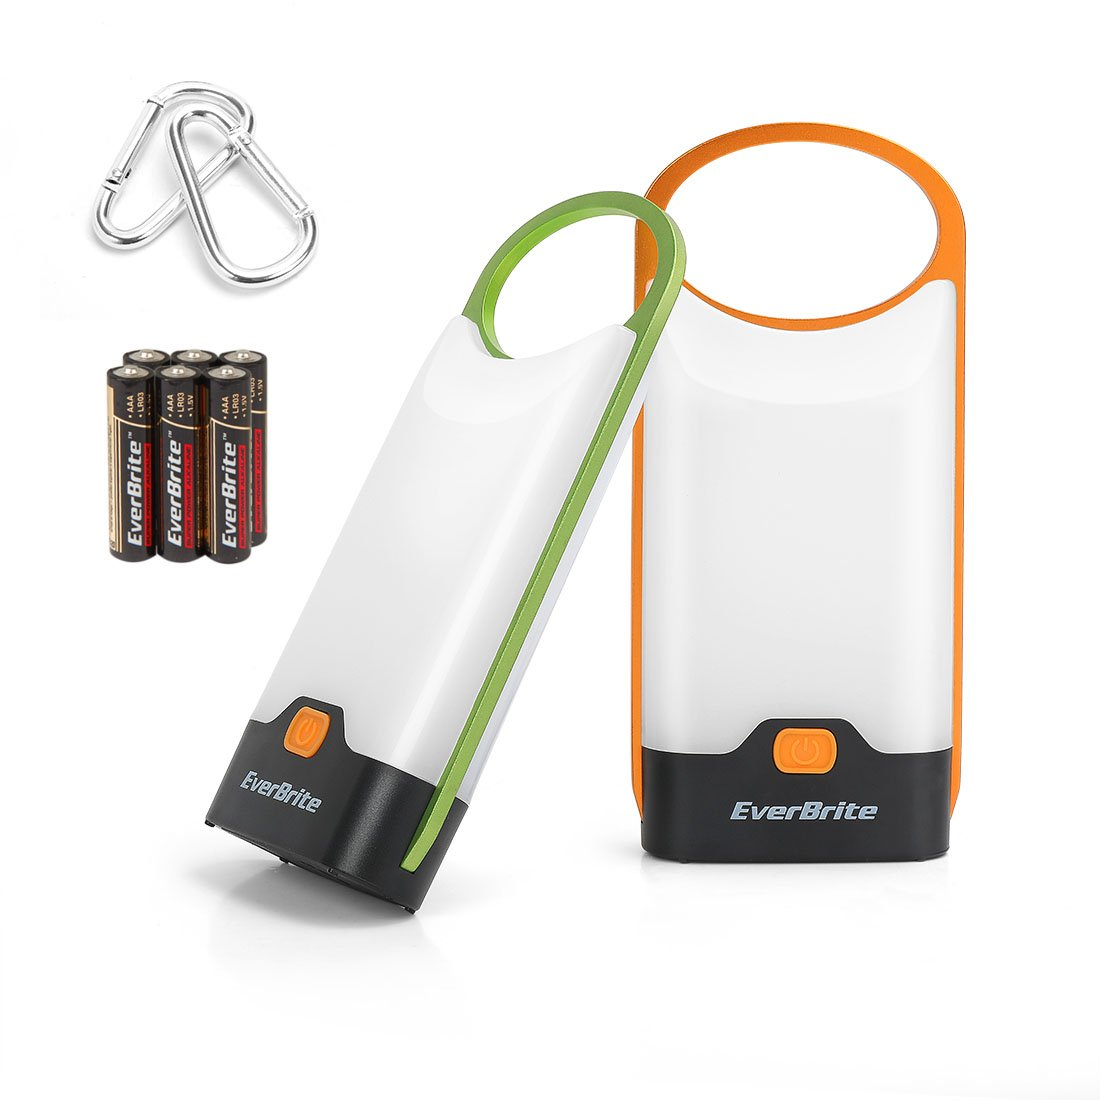 EverBrite Camping Lantern Slim LED Flashlight 2-Pack 150 Lumens with Carabiners Green&Orange for Camping, Emergency, Hurricane, Power Outage 6 AAA Alkaline Batteries Included by EverBrite